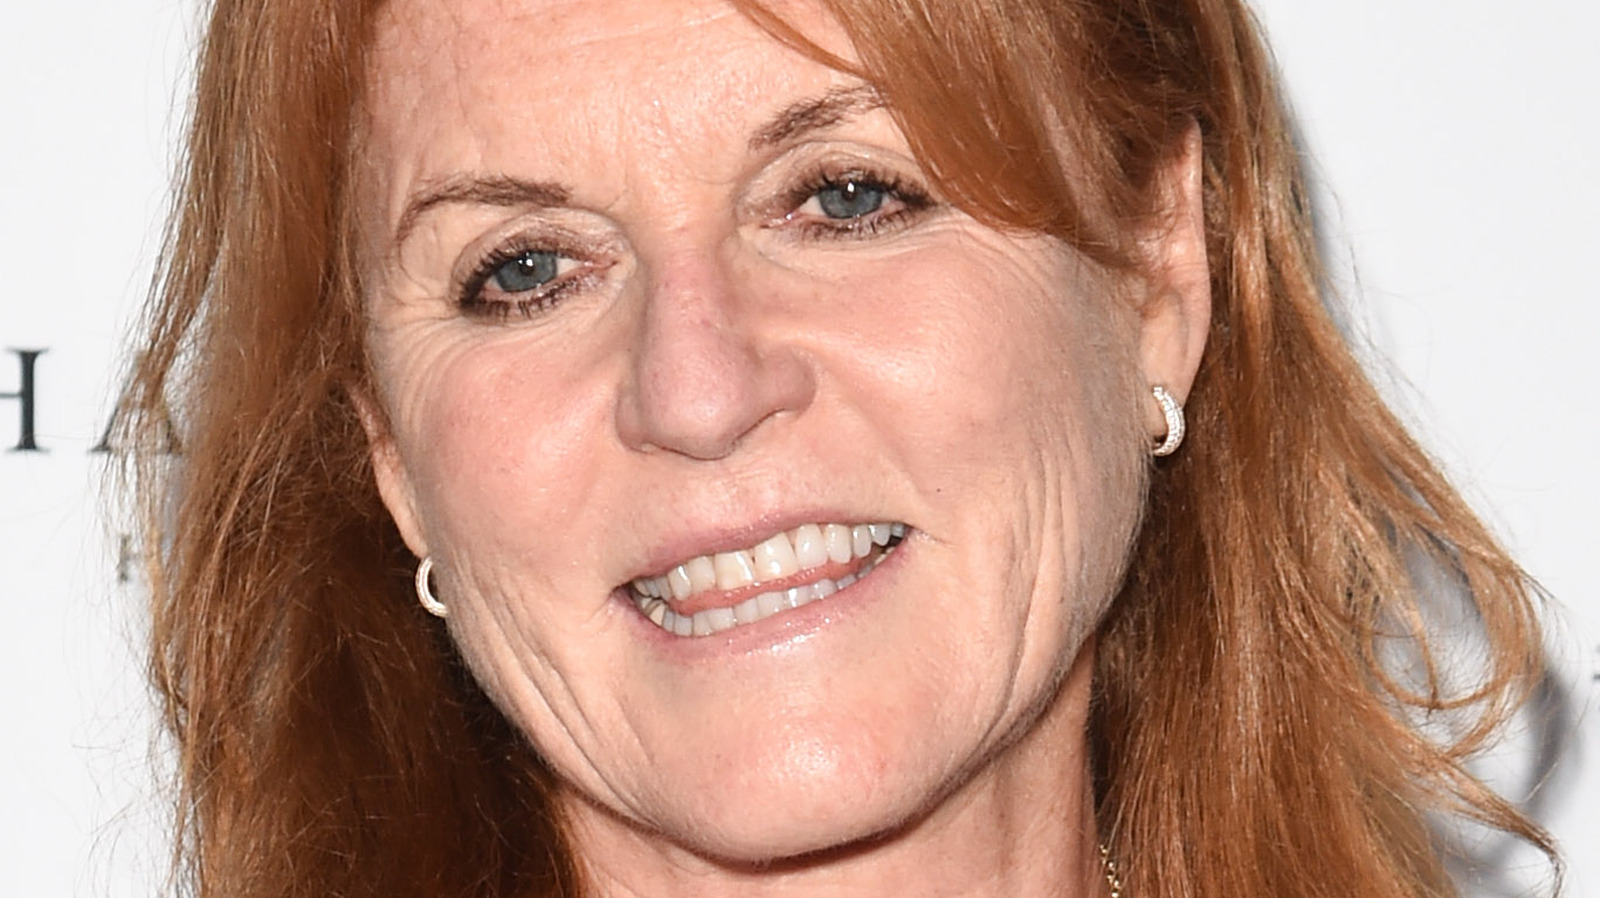 How Is Sarah Ferguson Involved In Prince Andrew's Legal Troubles?